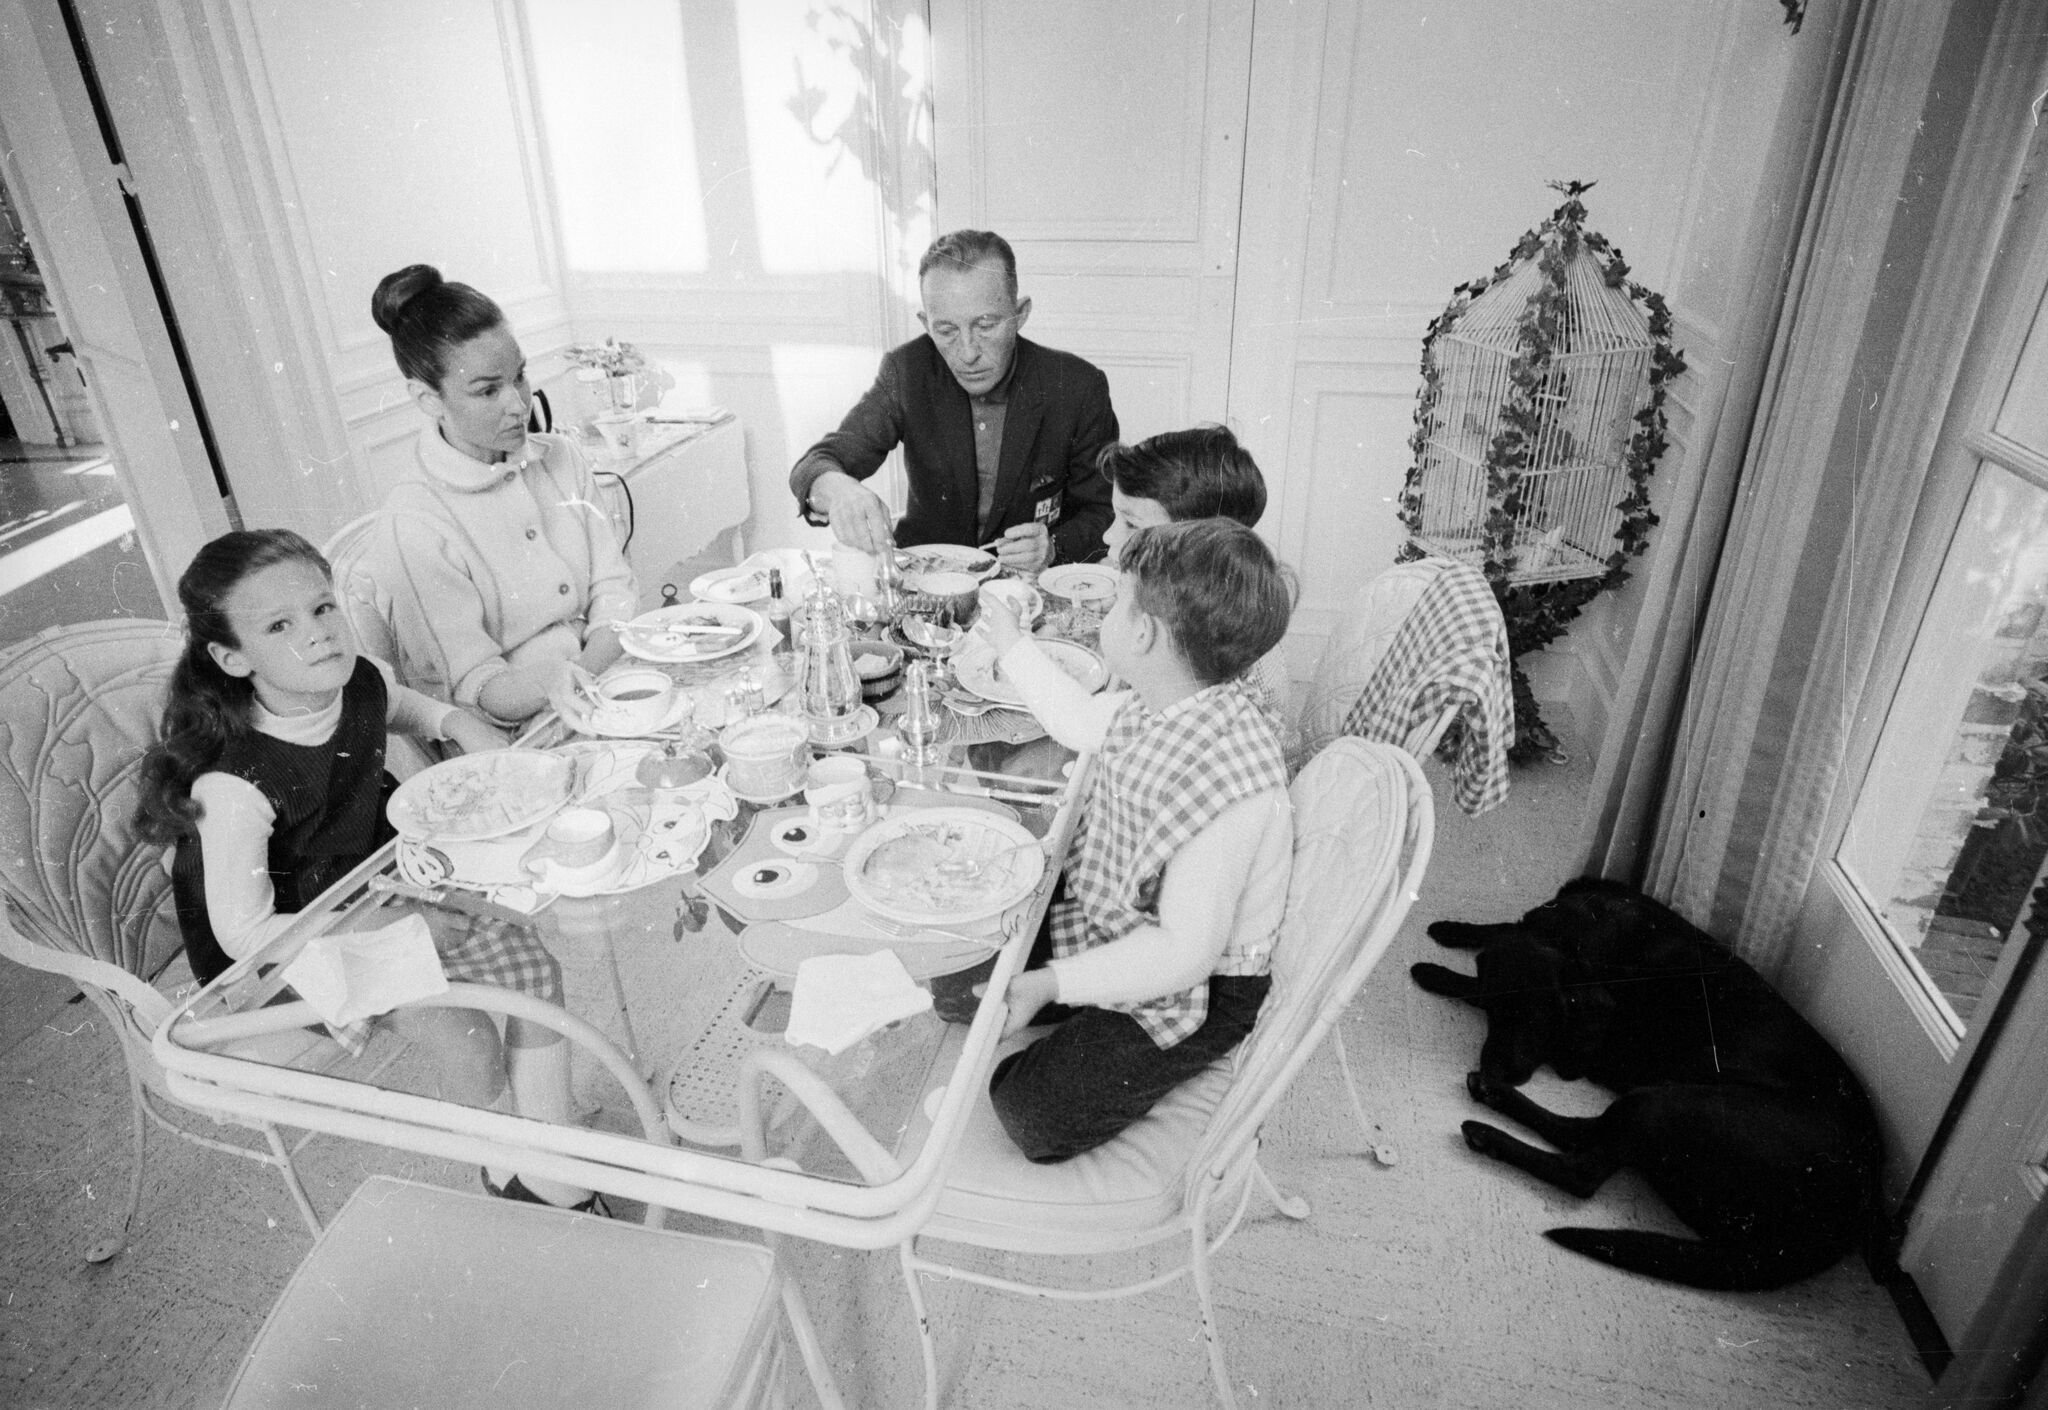 Bing Crosby (1901 - 1977) at his home in San Francisco with his sons Nathaniel and Harry and his daughter, Mary. | Getty Images / Global Images Ukraine